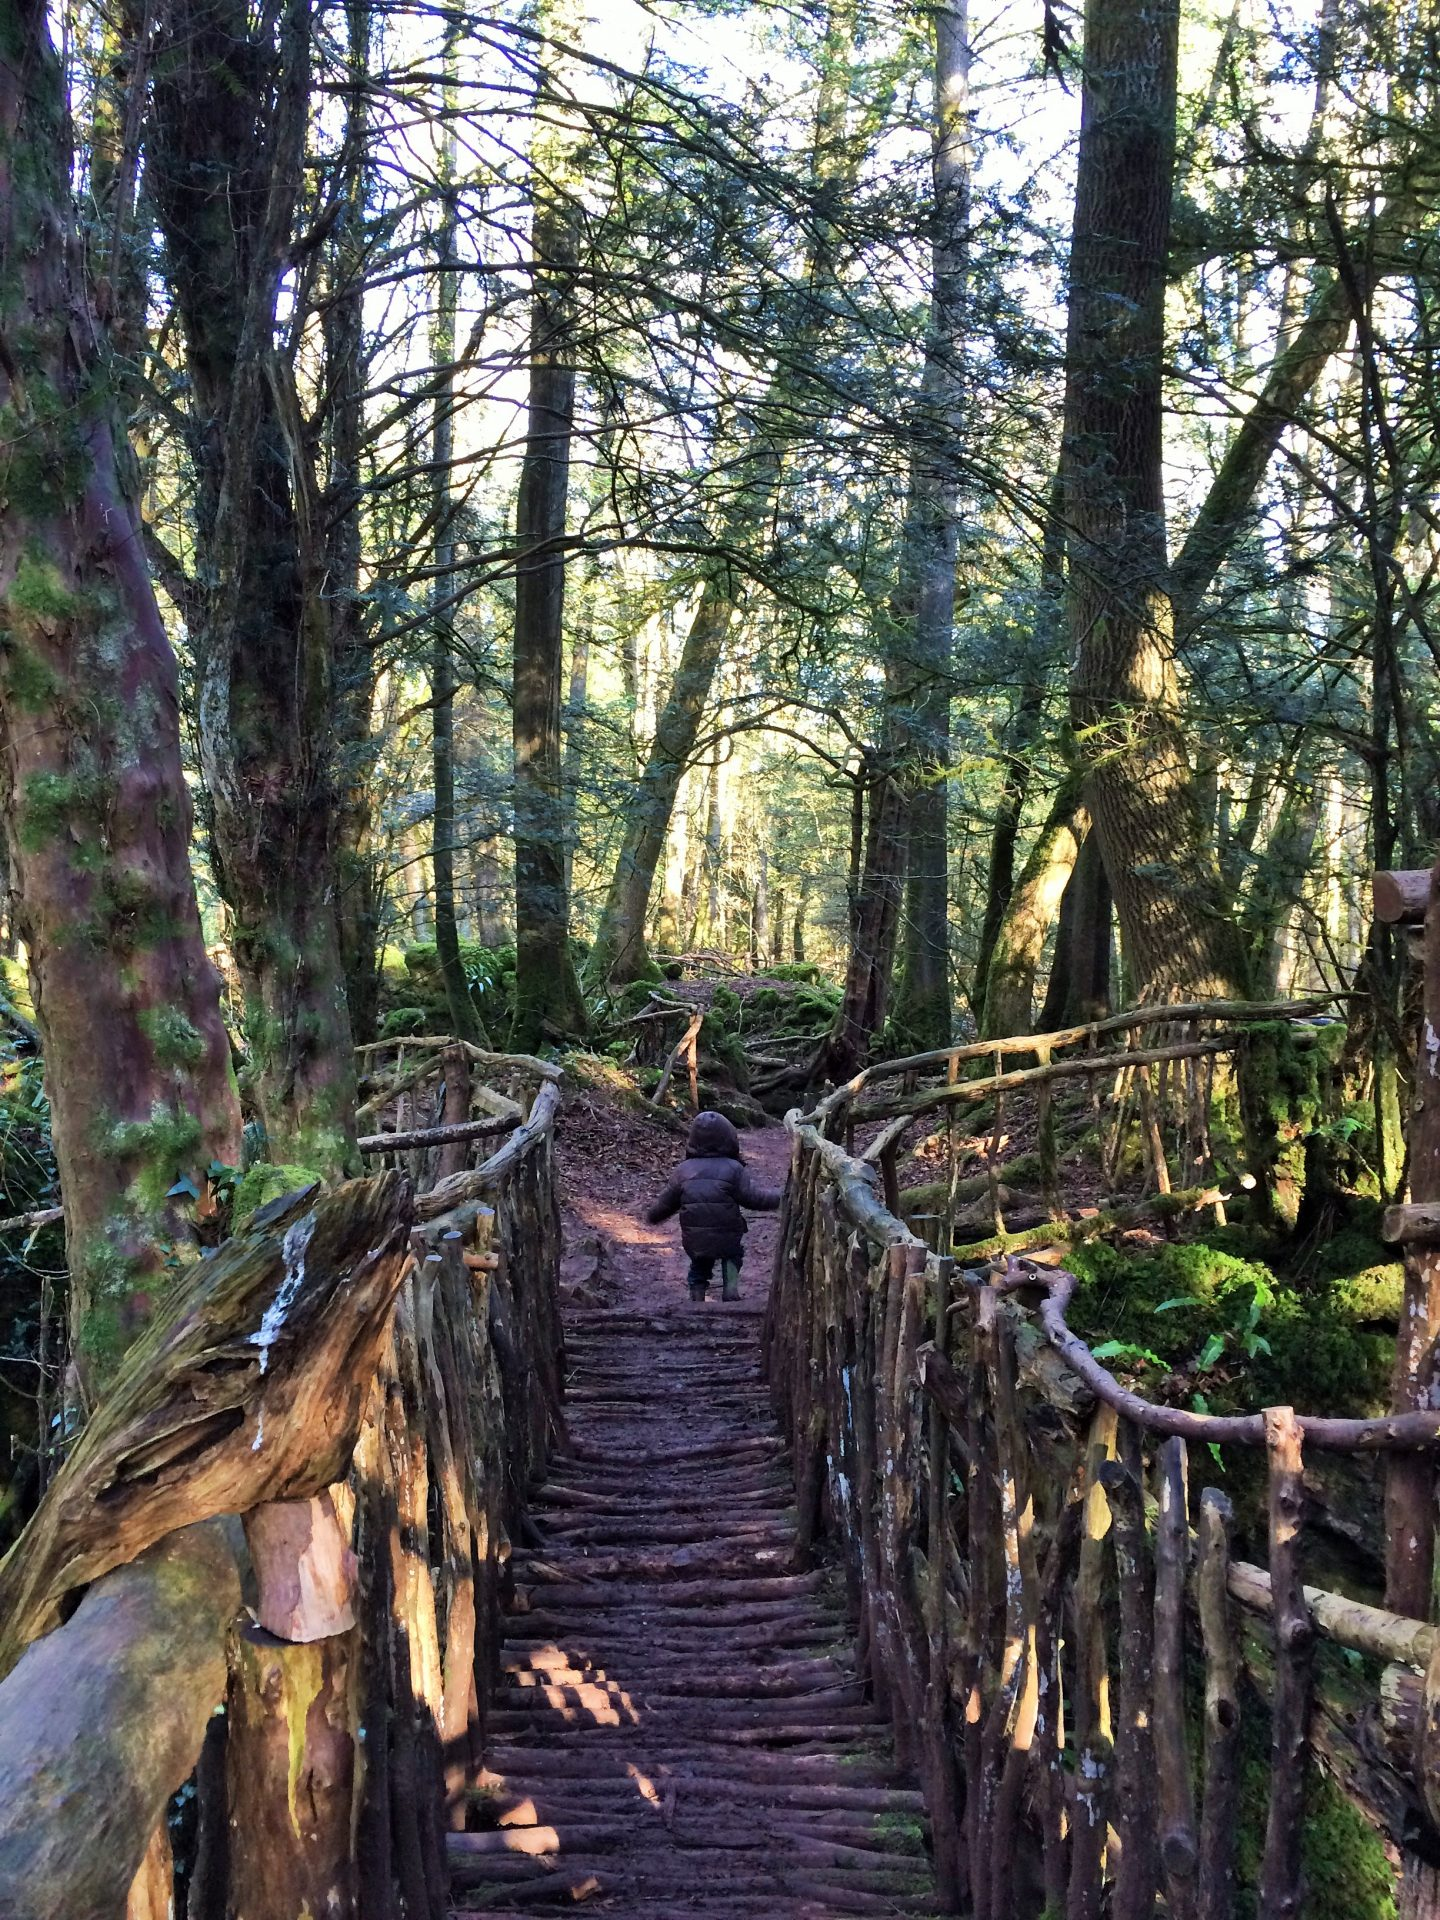 Puzzlewood, Forest of Dean, family friendly weekend away